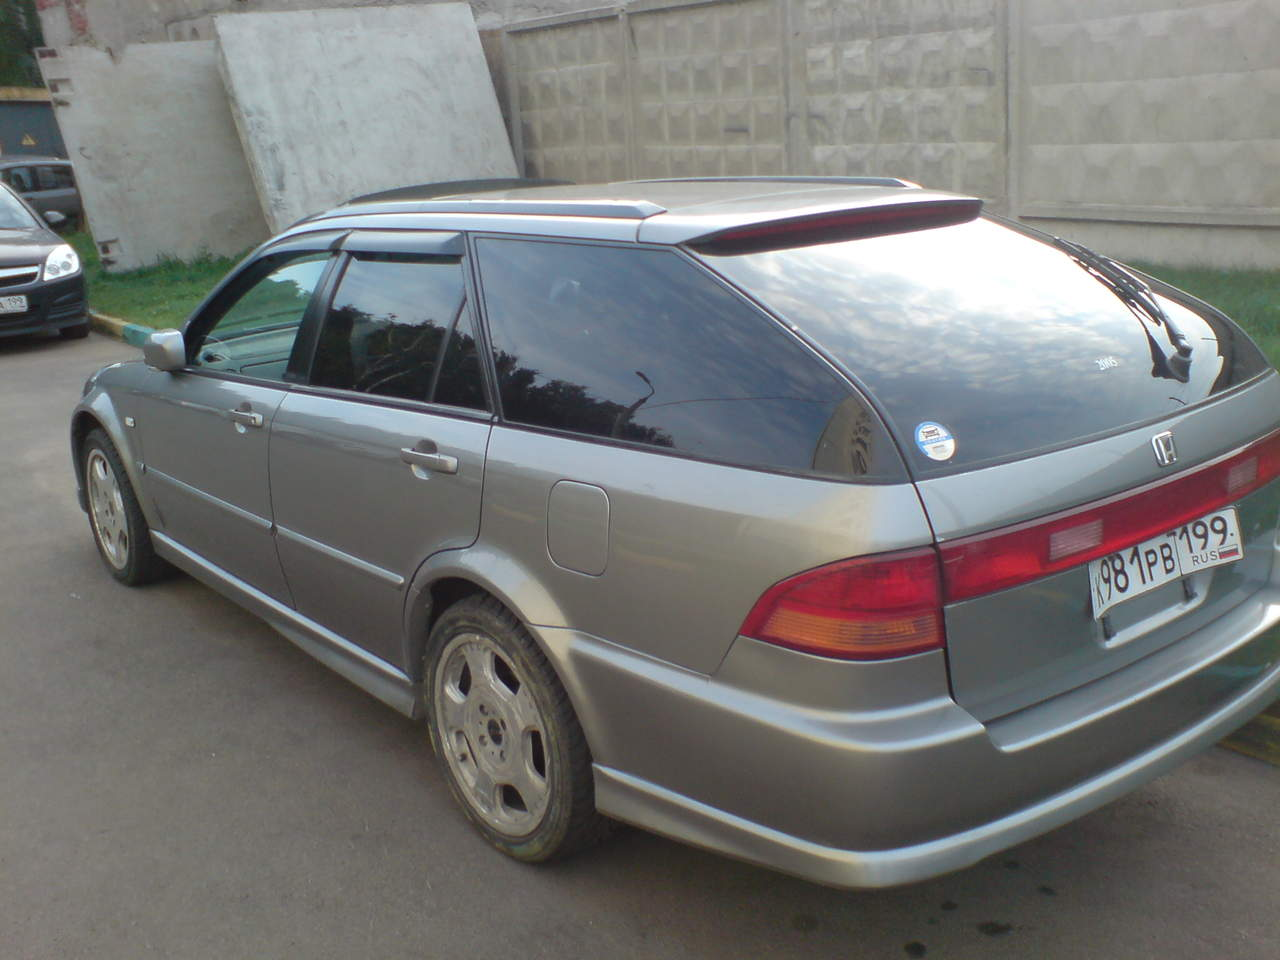 1999 Honda Accord Wagon For Sale 2 3 Gasoline Ff